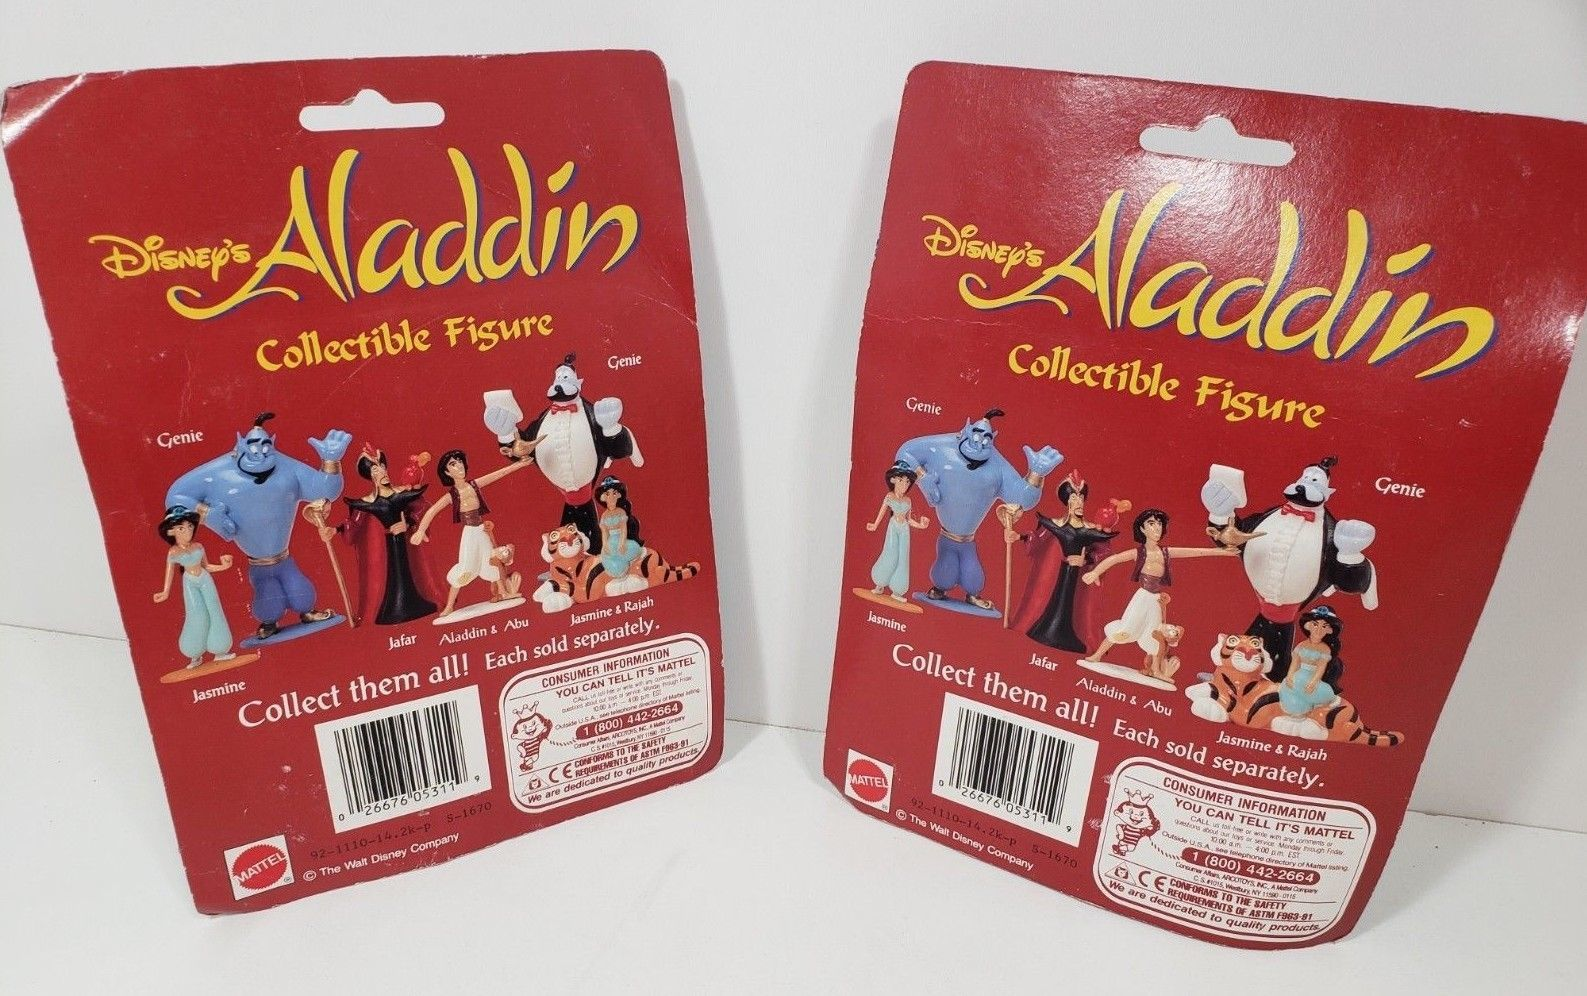 Set of 2 Mattel Disney's Alladdin Collectible figure - Genie image 3